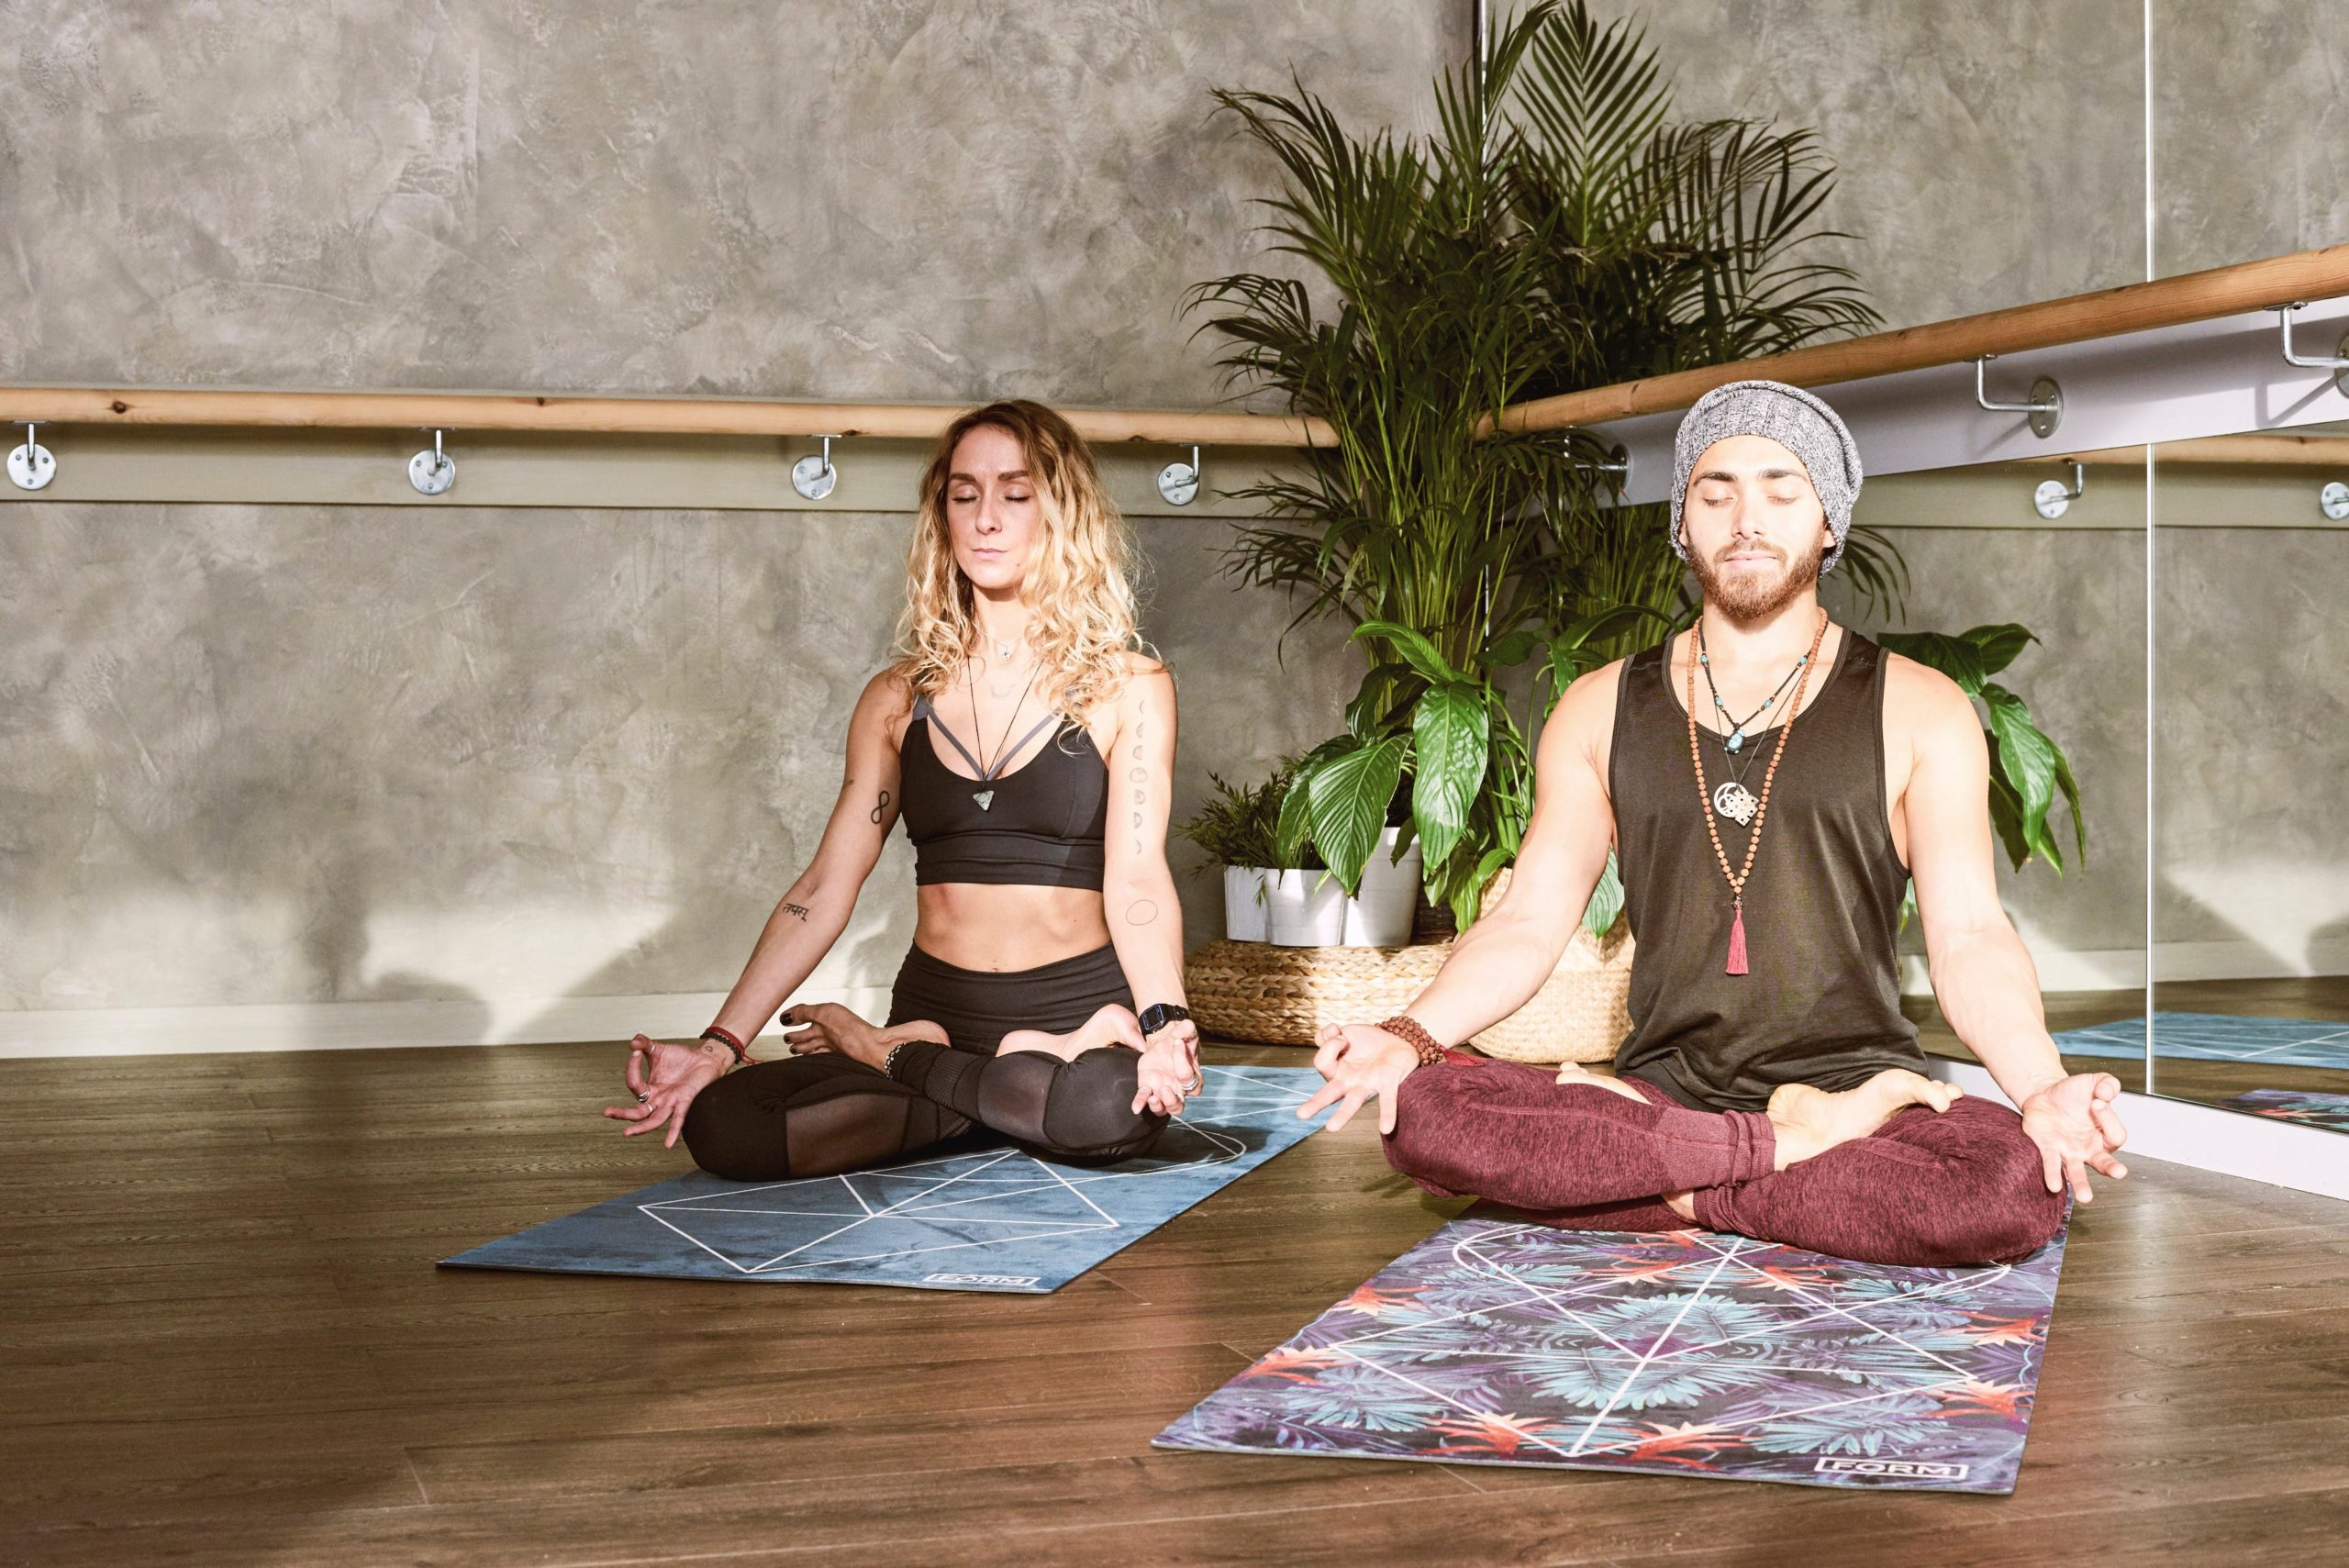 3 Creative Ways To Meditate At Home